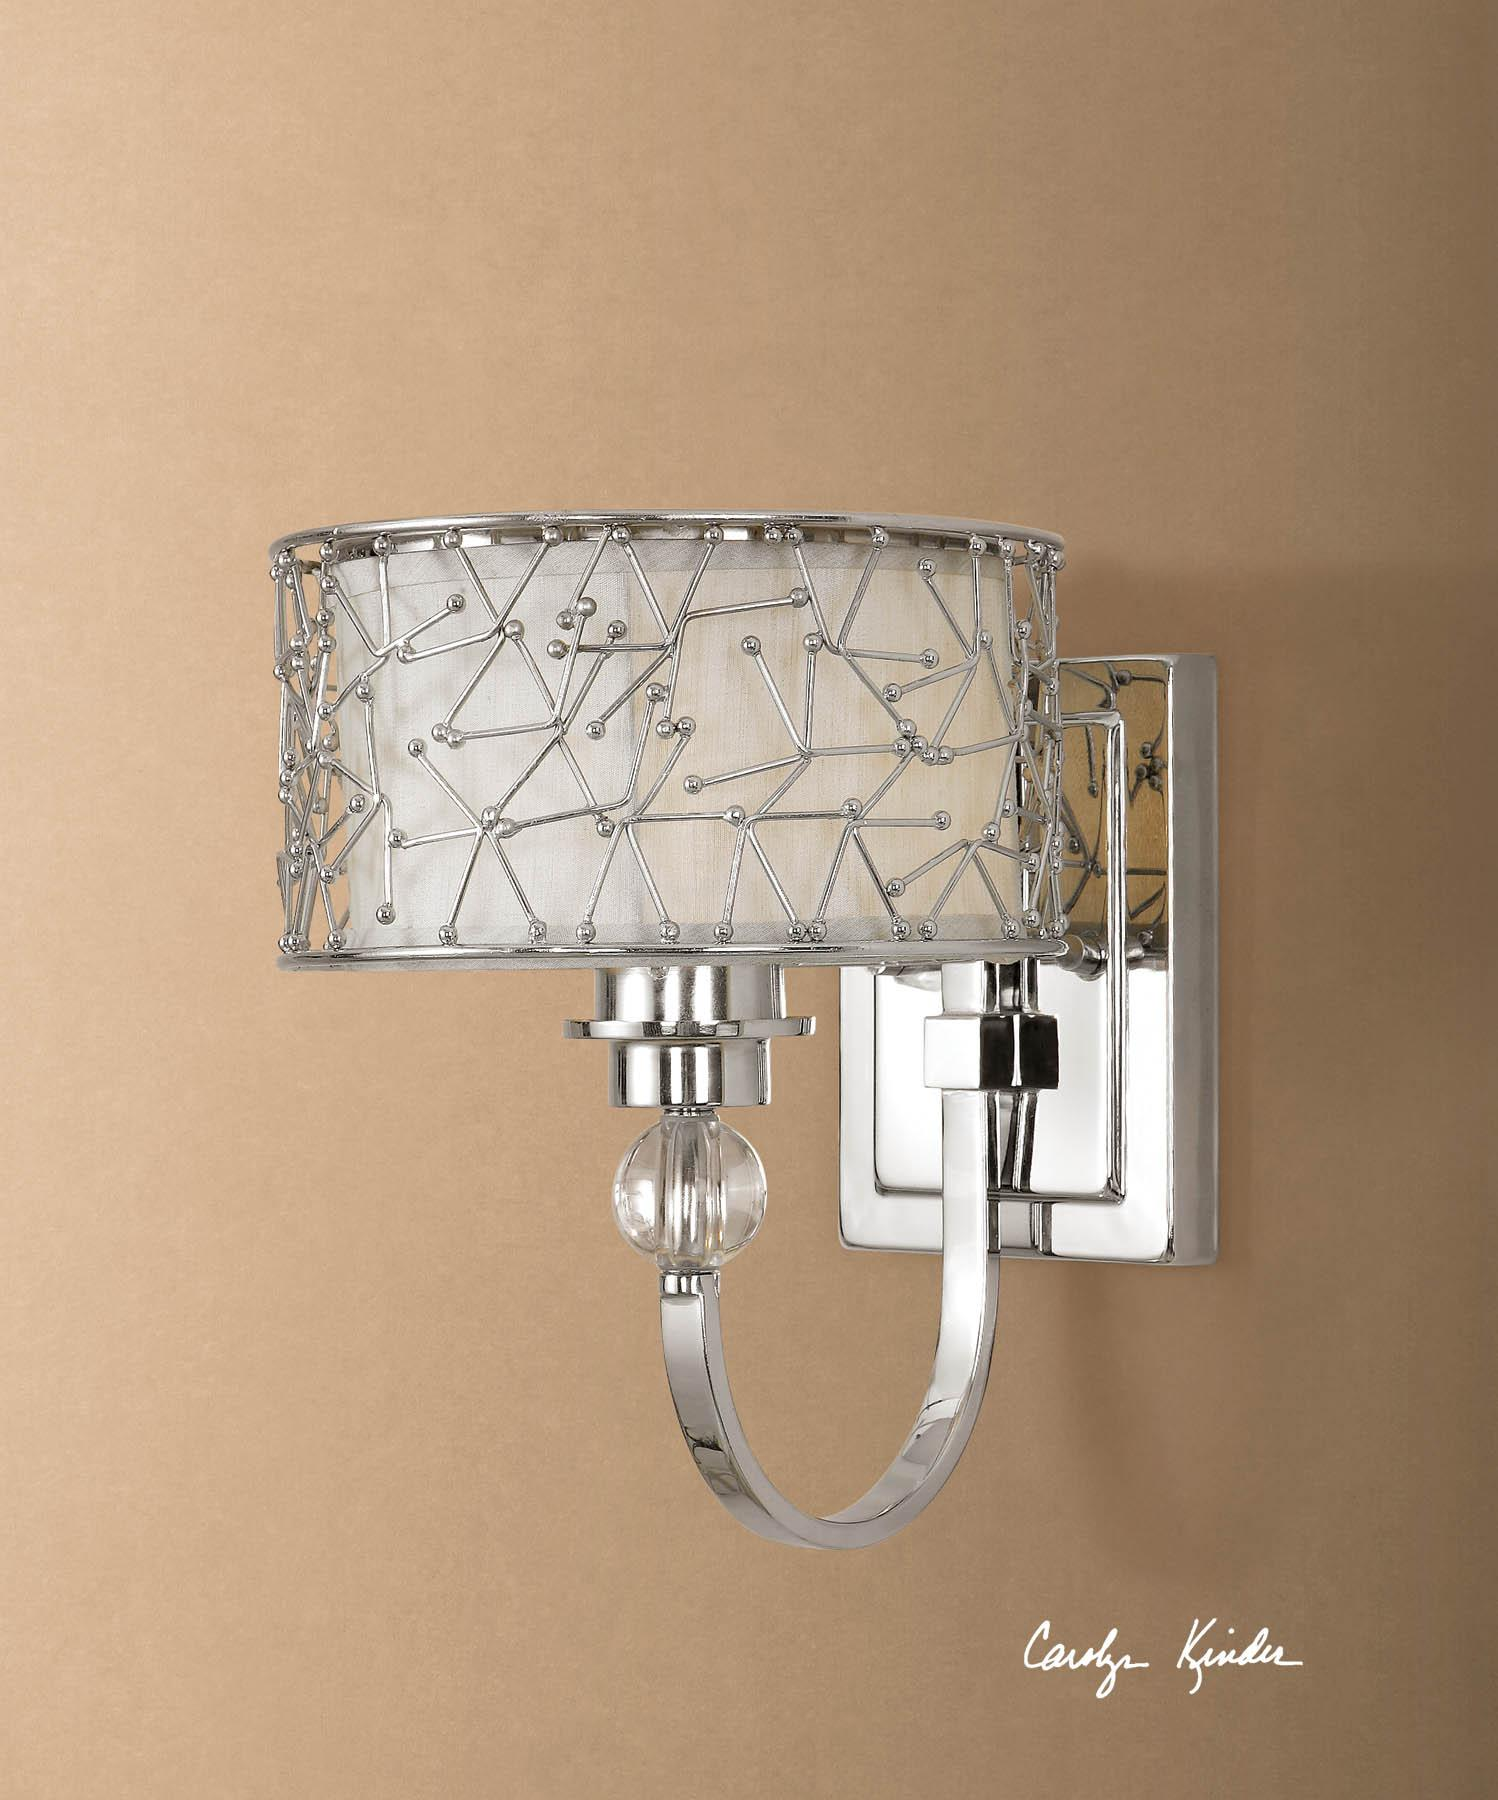 Uttermost Lighting Fixtures Brandon 1 Light Wall Sconce - Item Number: 22484